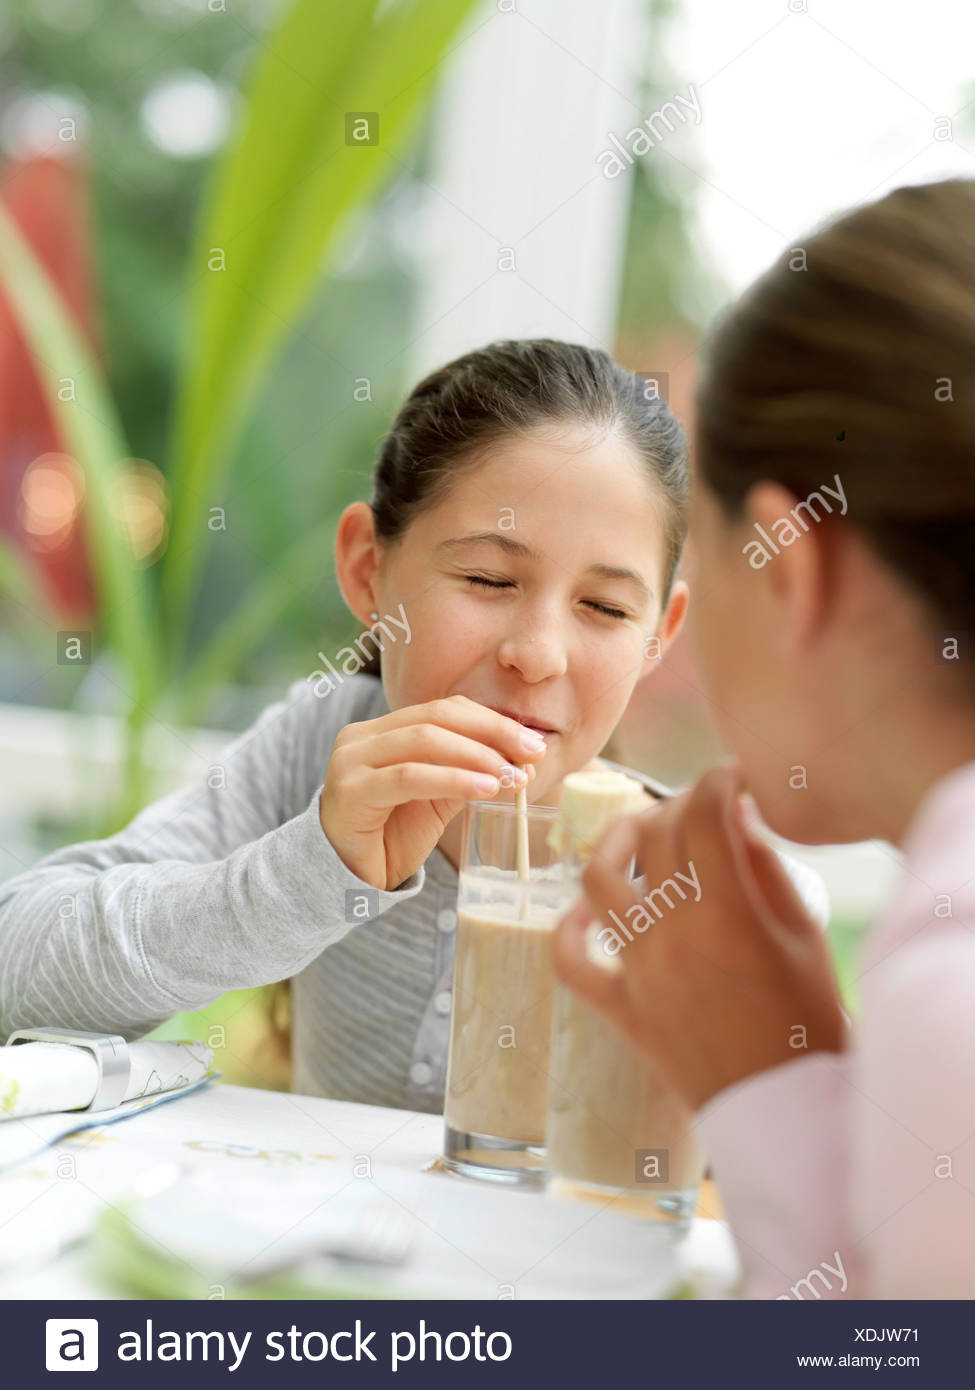 Two girls drinking chocolate milk with straw - Stock Image